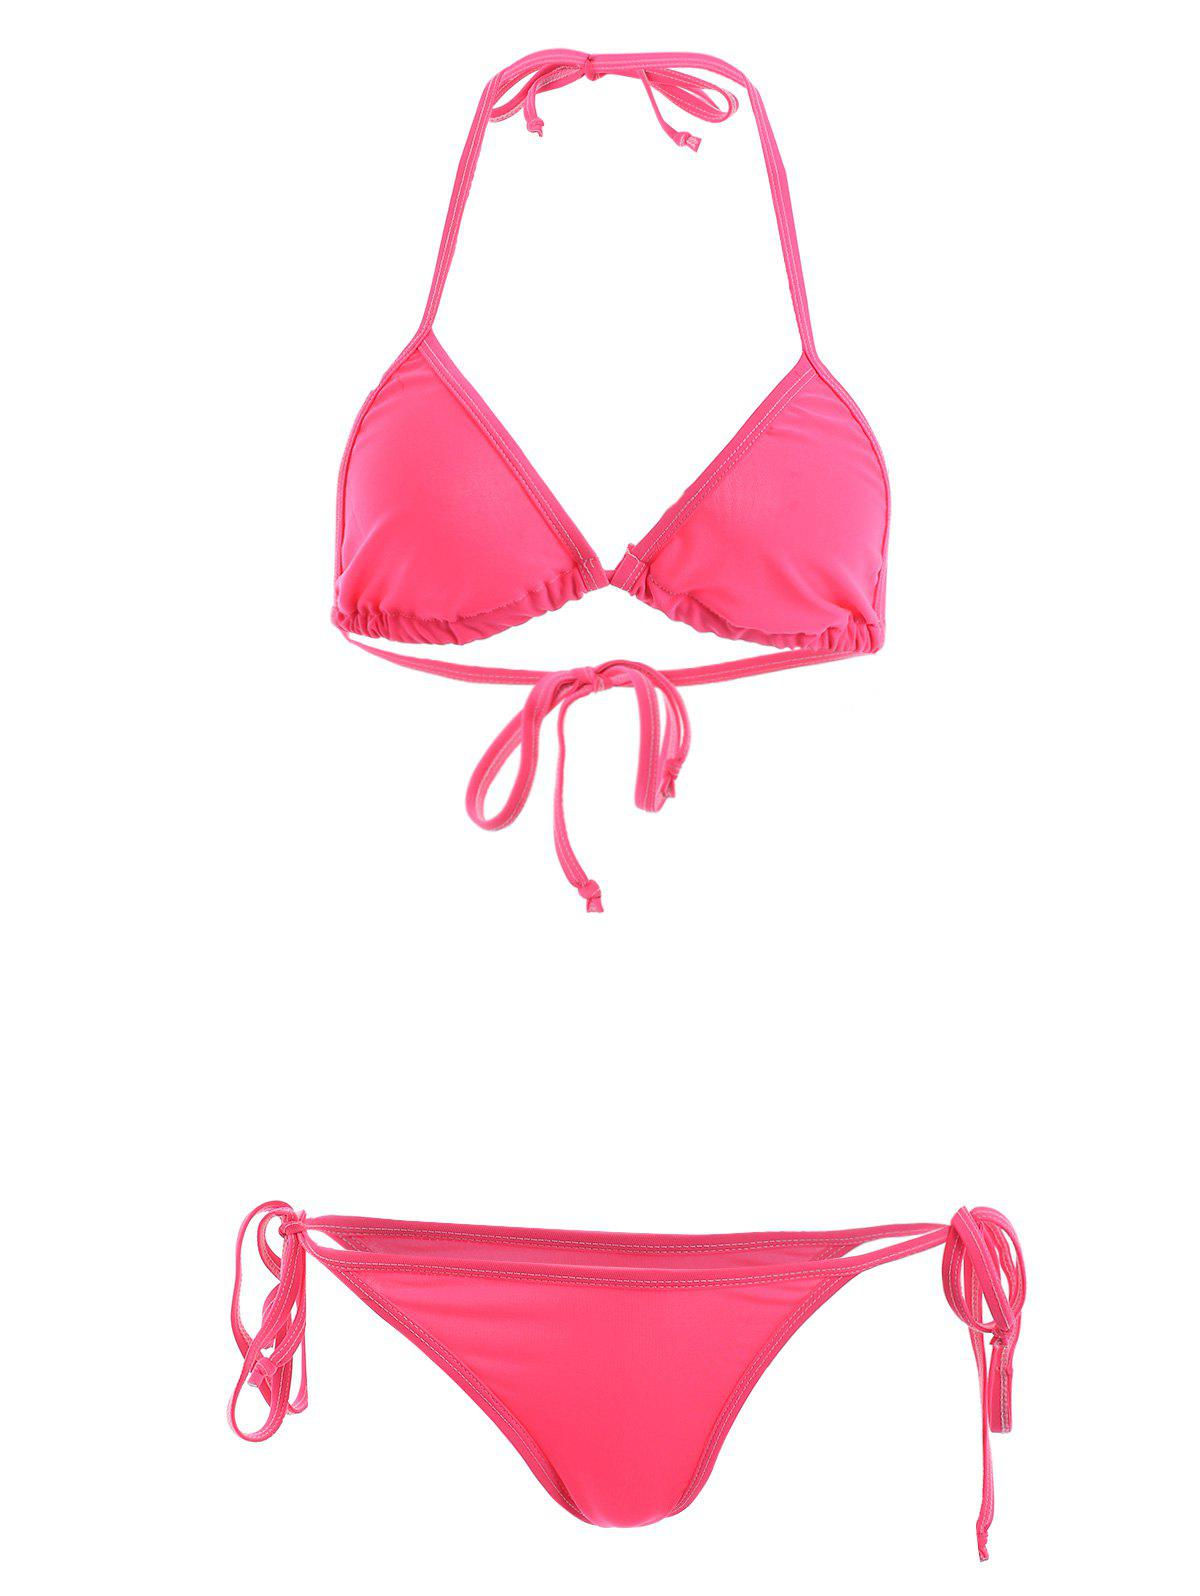 Stylish Women's Halterneck Solid Color String Bikini Set - WATERMELON RED L